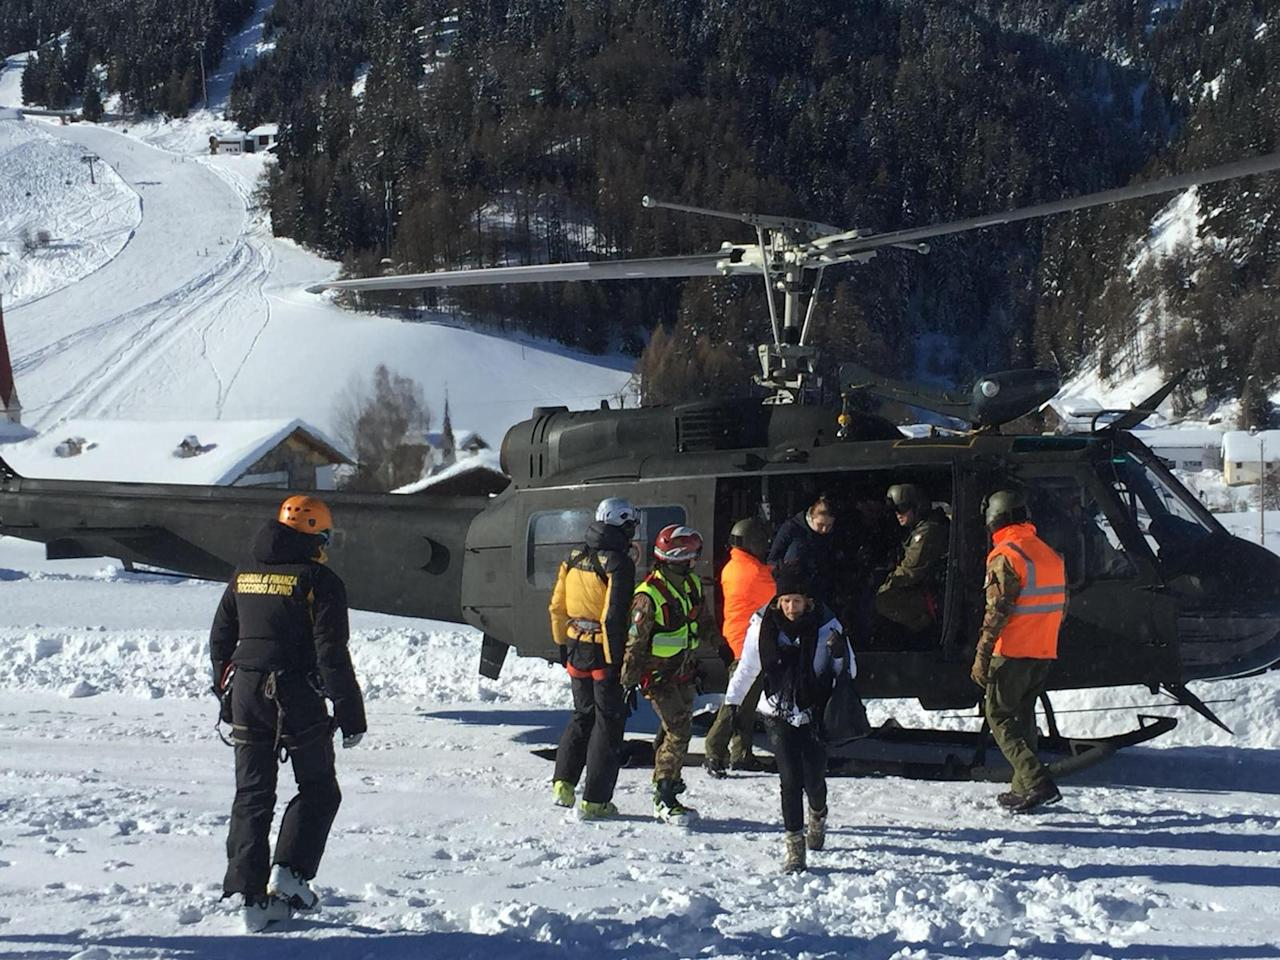 An Italian army helicopter lands during the evacuation of guests and tourists of the Langtauferer hotel in the Venosta valley, northern Italy, Tuesday, Jan. 23, 2018. About 75 tourists and hotel workers were being evacuated from a four-star mountainside hotel in northern Italy near the Austrian border after an avalanche overnight, the hotel manager said Tuesday as heavy snow caused disruption across the Alps. The Langtauferer Hotel, located near the Austrian border at 1,870 meters (6,135 feet) above sea level and some 100 kilometers (about 60 kilometers) northwest of Bolzano, was not directly hit, but was in an area of extremely high risk for further avalanches. (Italian Army via AP)